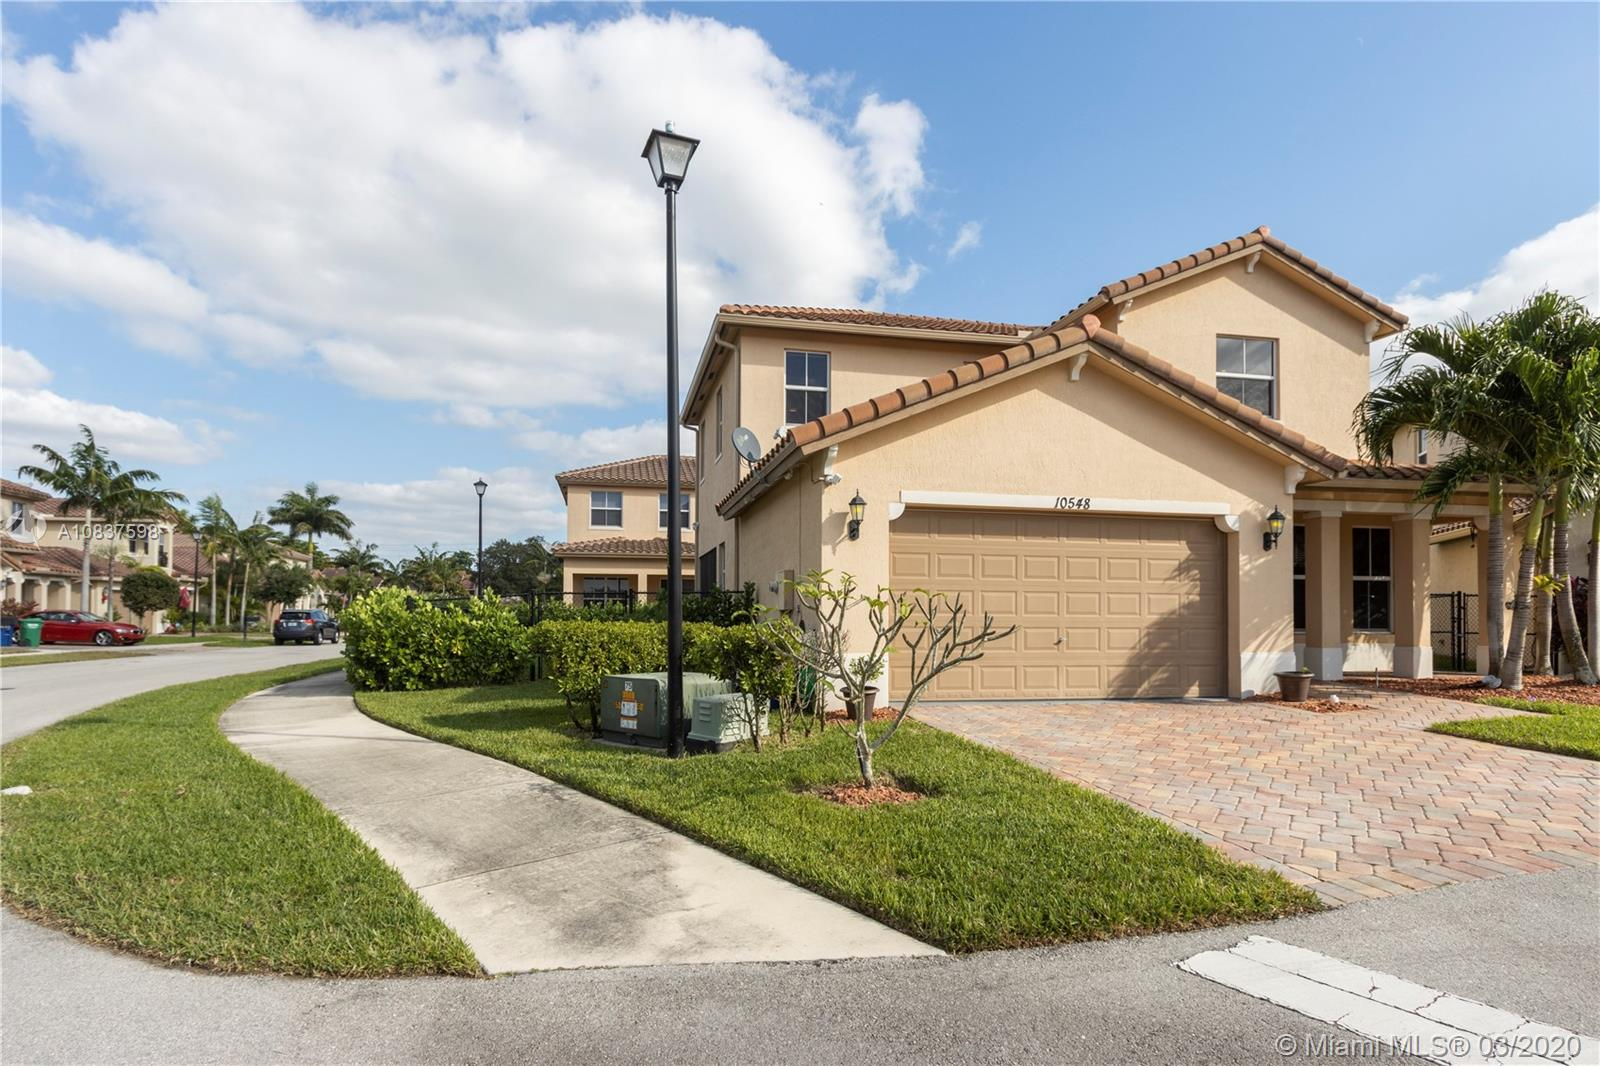 10548 NW 36th St, Coral Springs, FL 33065